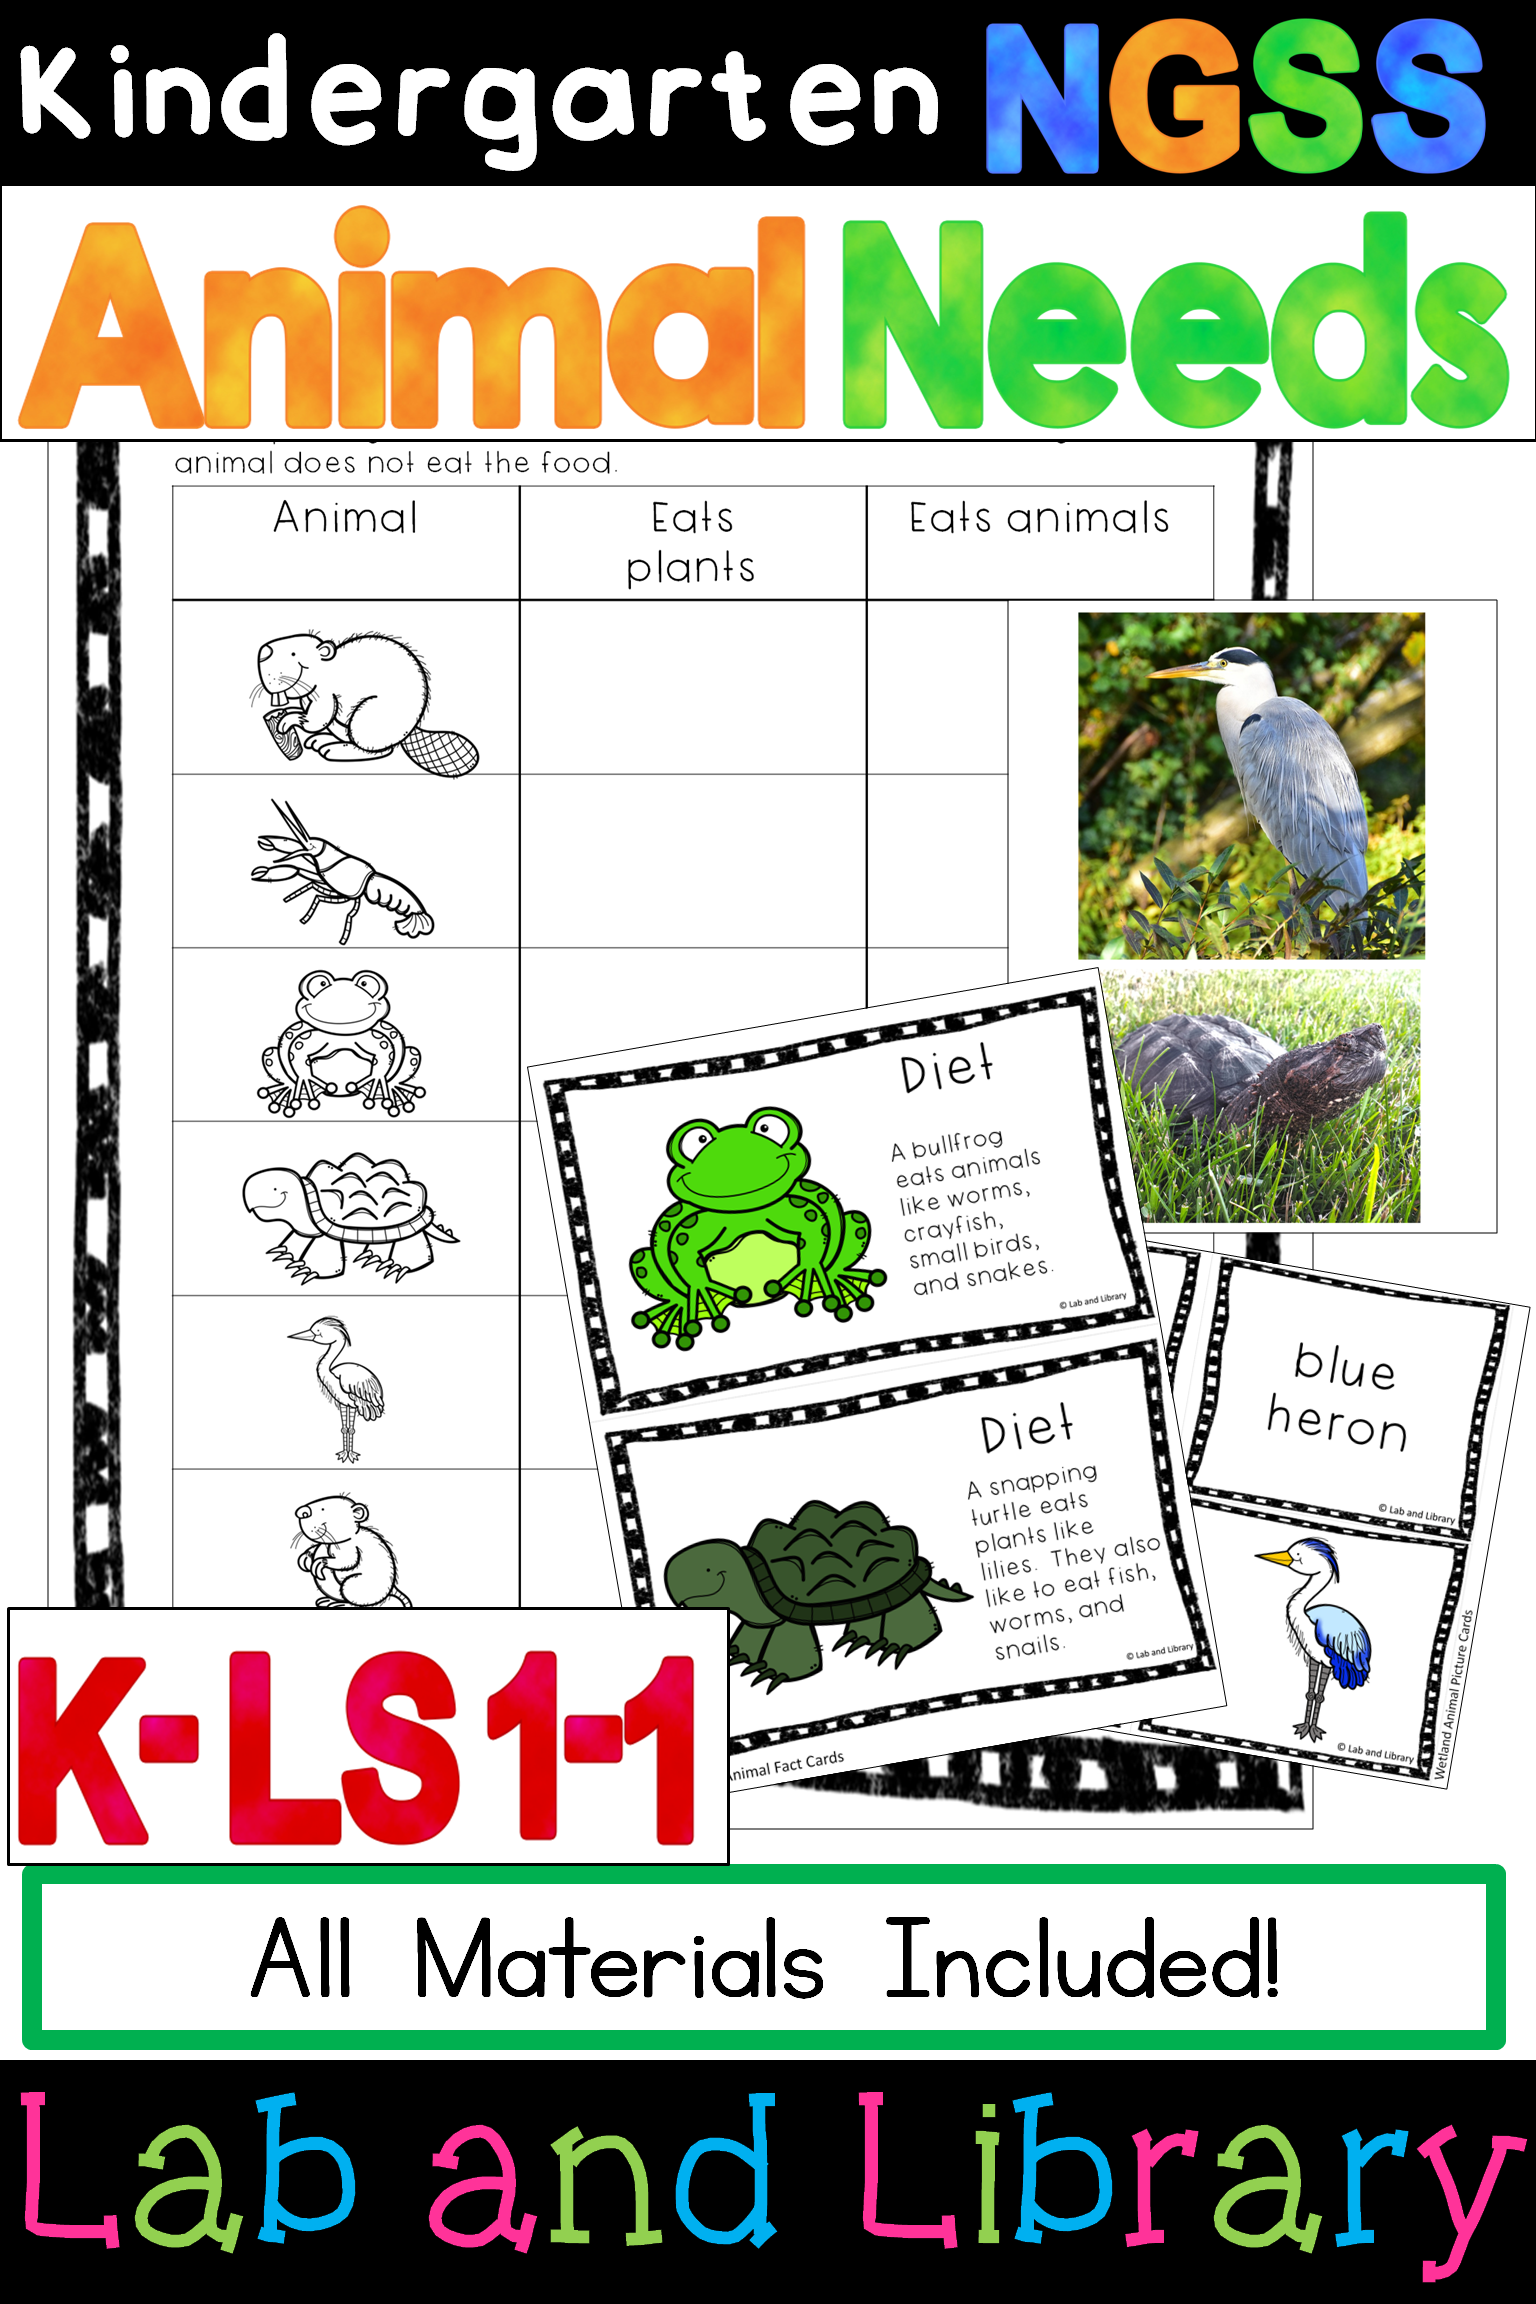 Kindergarten Ngss Animal Needs Kindergarten Life Science In This Engaging Unit On Animal Needs Students Beco Ngss Science Teaching Resources Ngss Kindergarten [ 2304 x 1536 Pixel ]